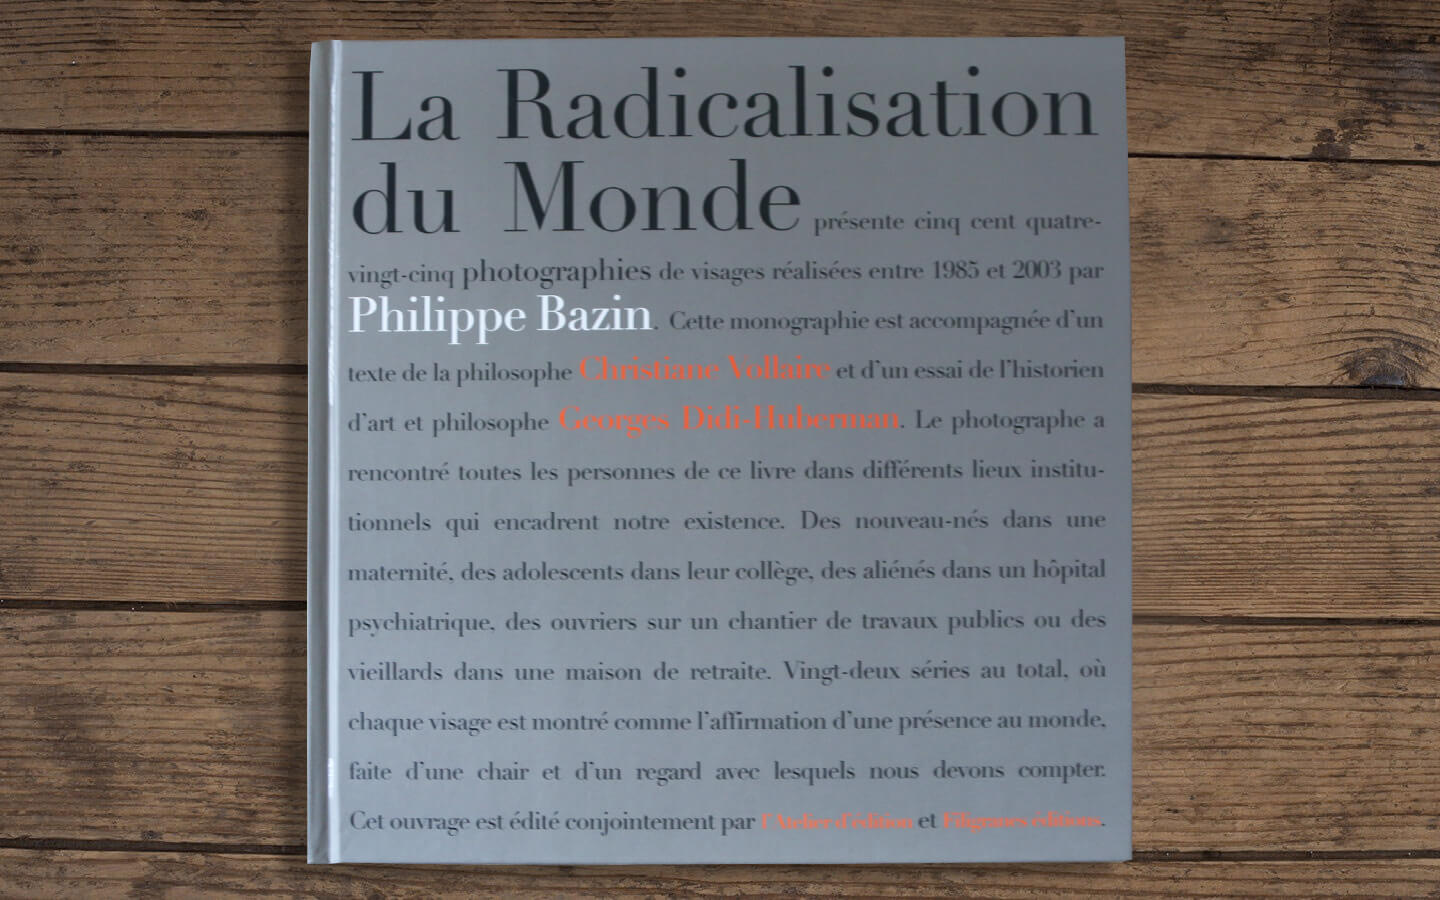 laradicalisationdumonde